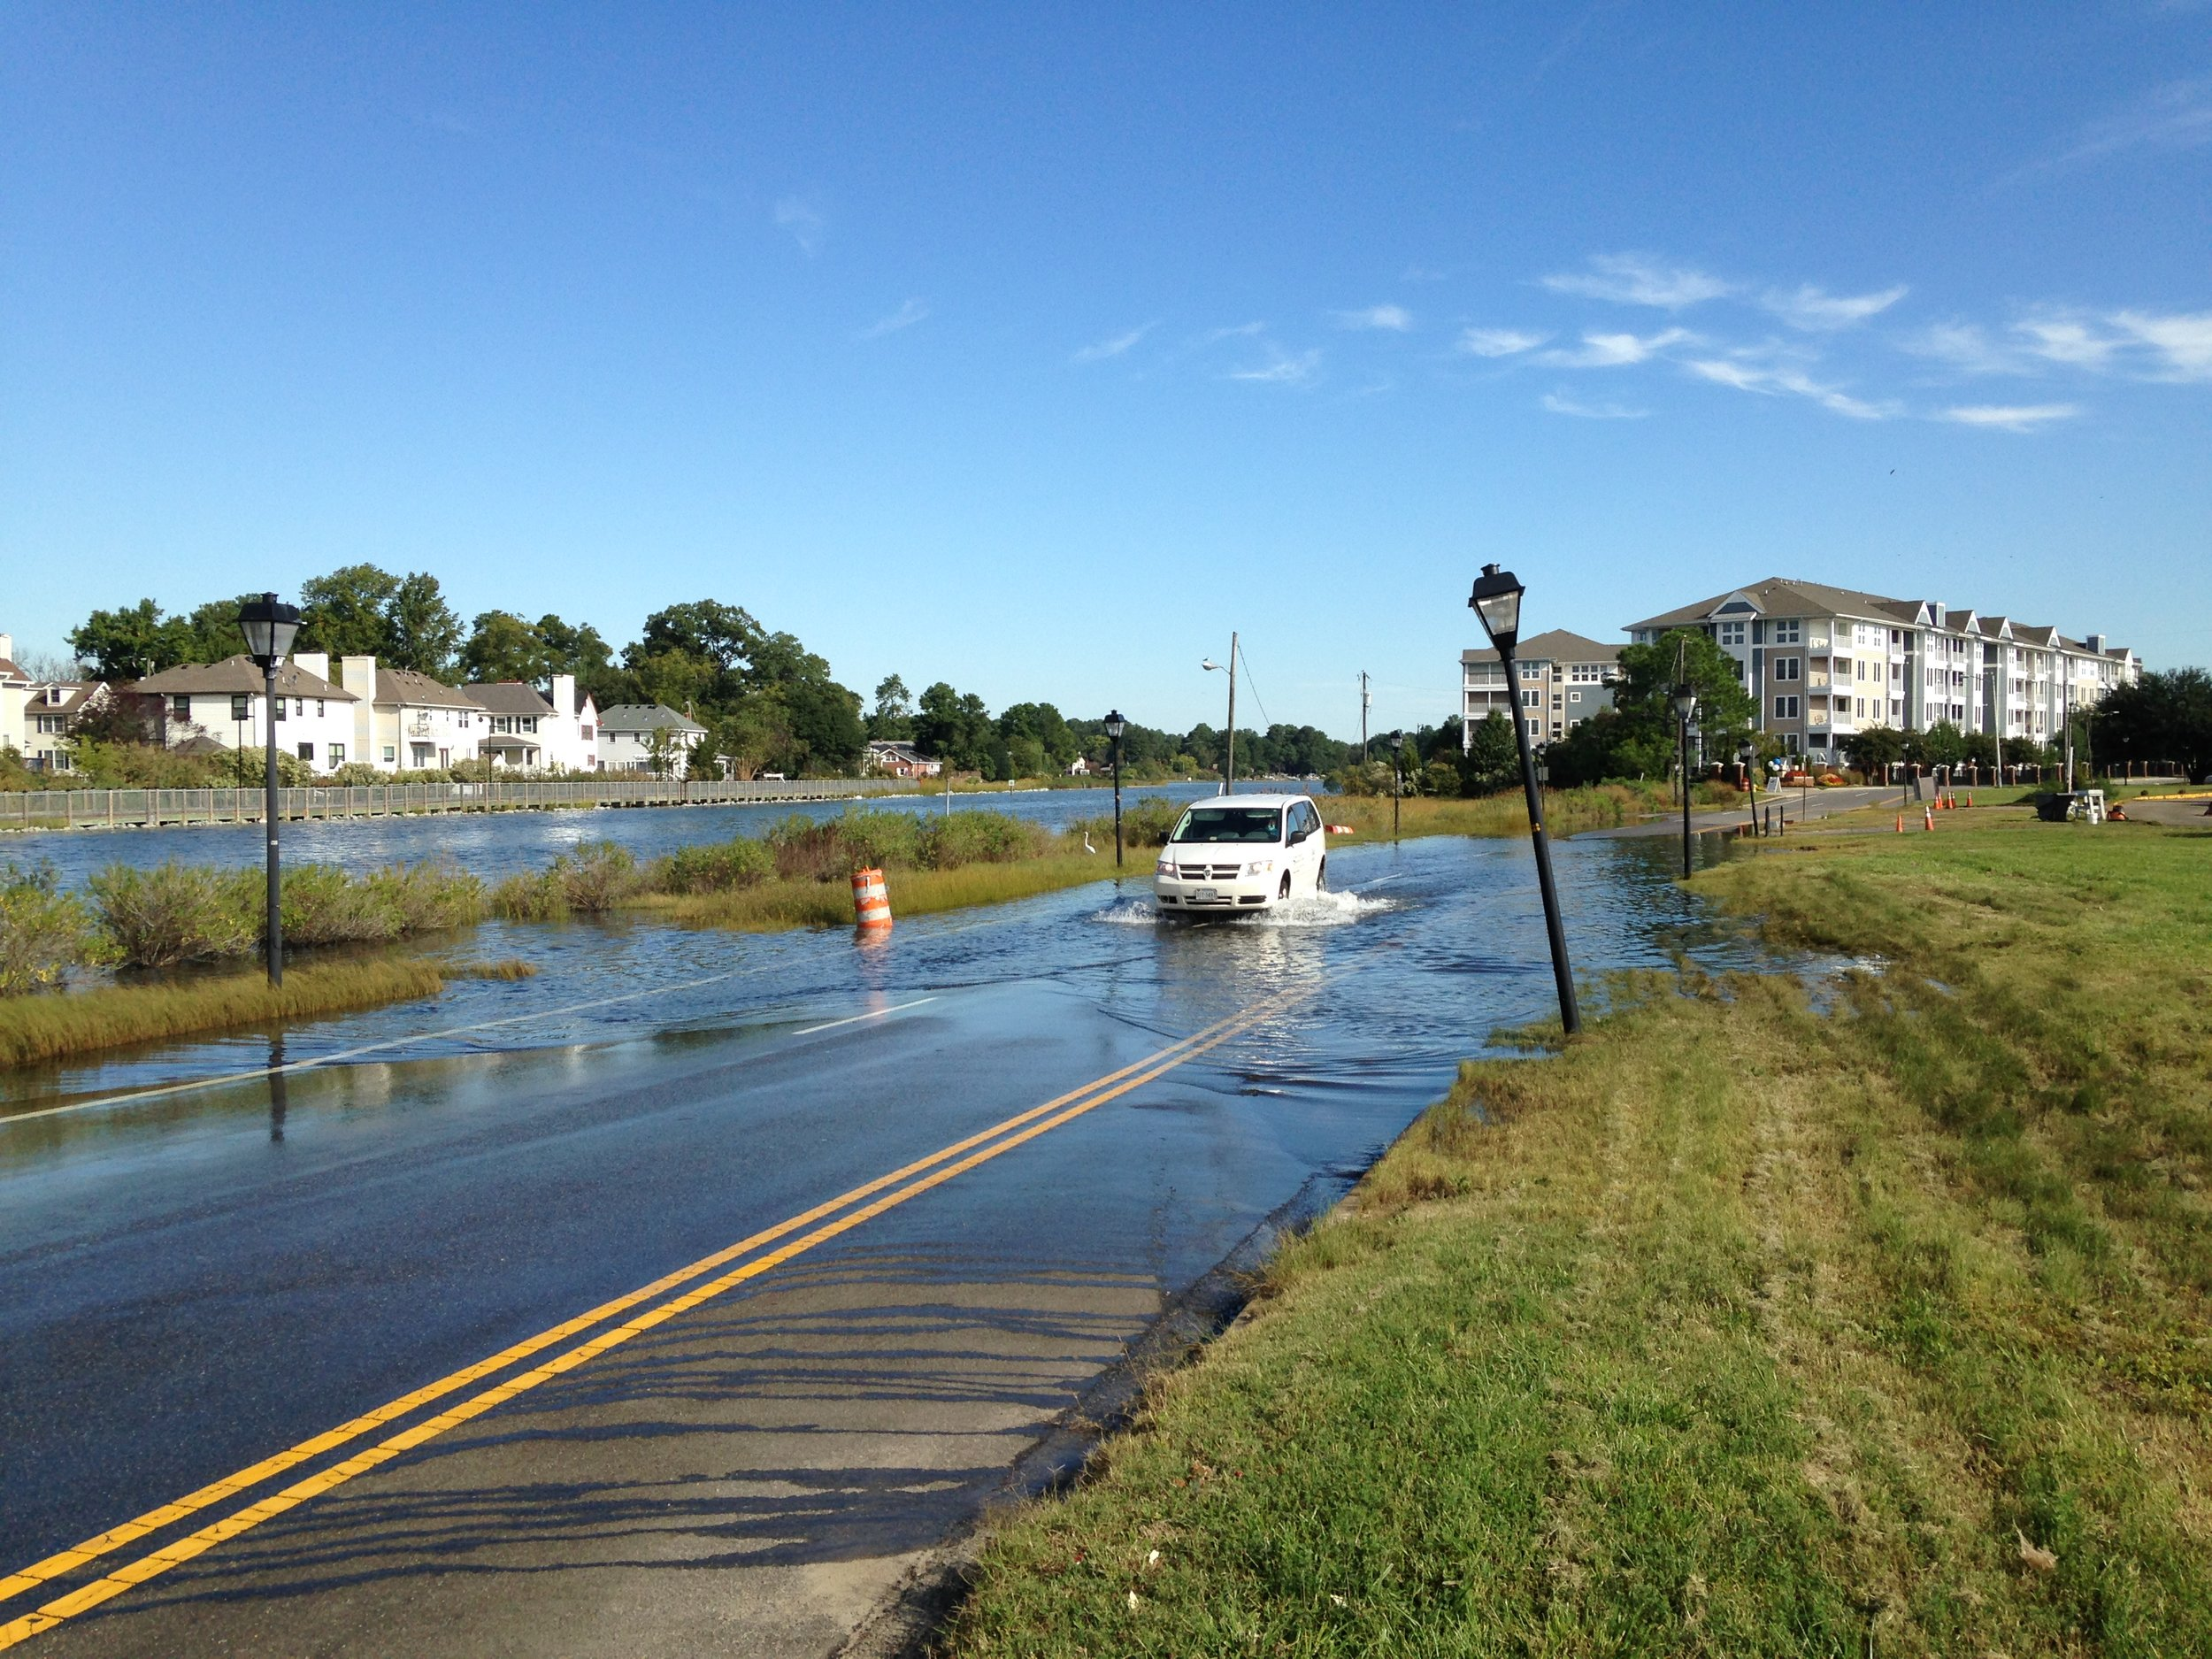 In Coastal Virginia, more than 1,500 miles of roadway could be inundated with 1.5 feet of sea level rise and a 3 foot storm surge  - VIMS 2013 Recurrent Flooding Study